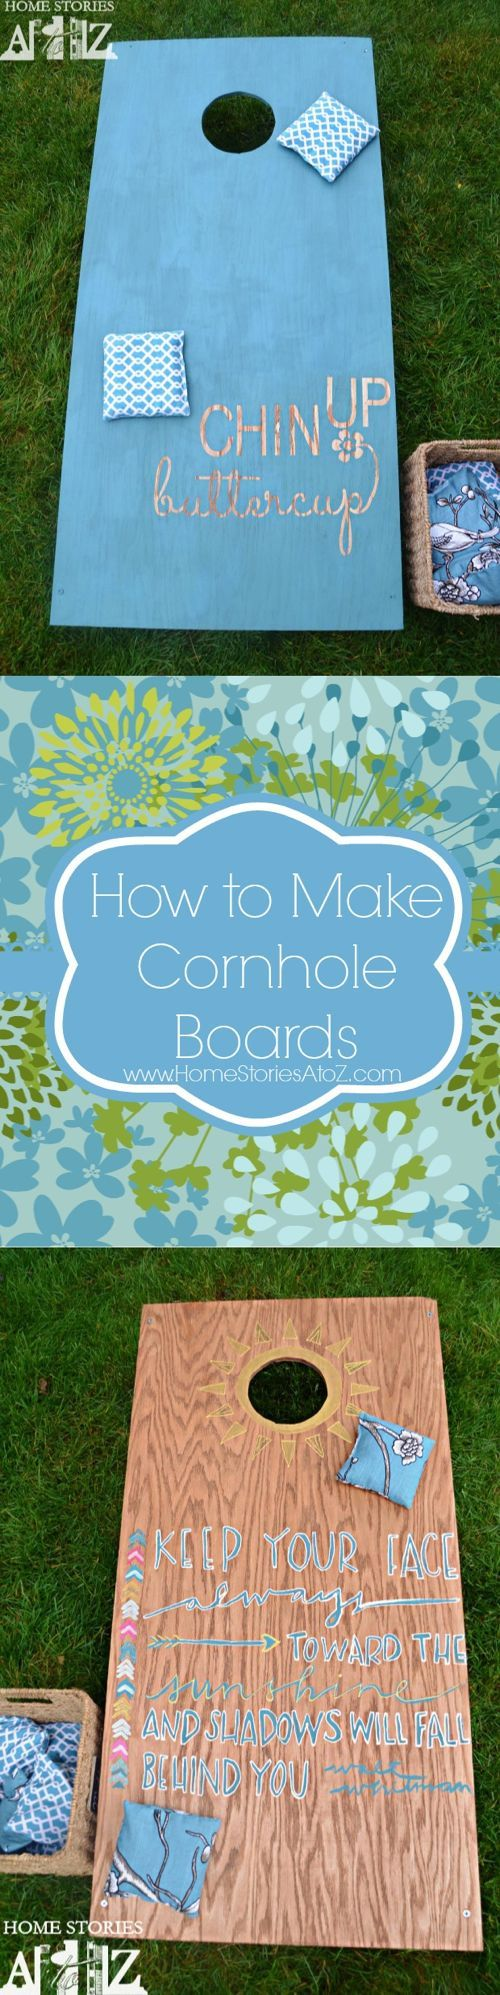 How to Build a Cornhole Board Crafts, Diy, Craft projects